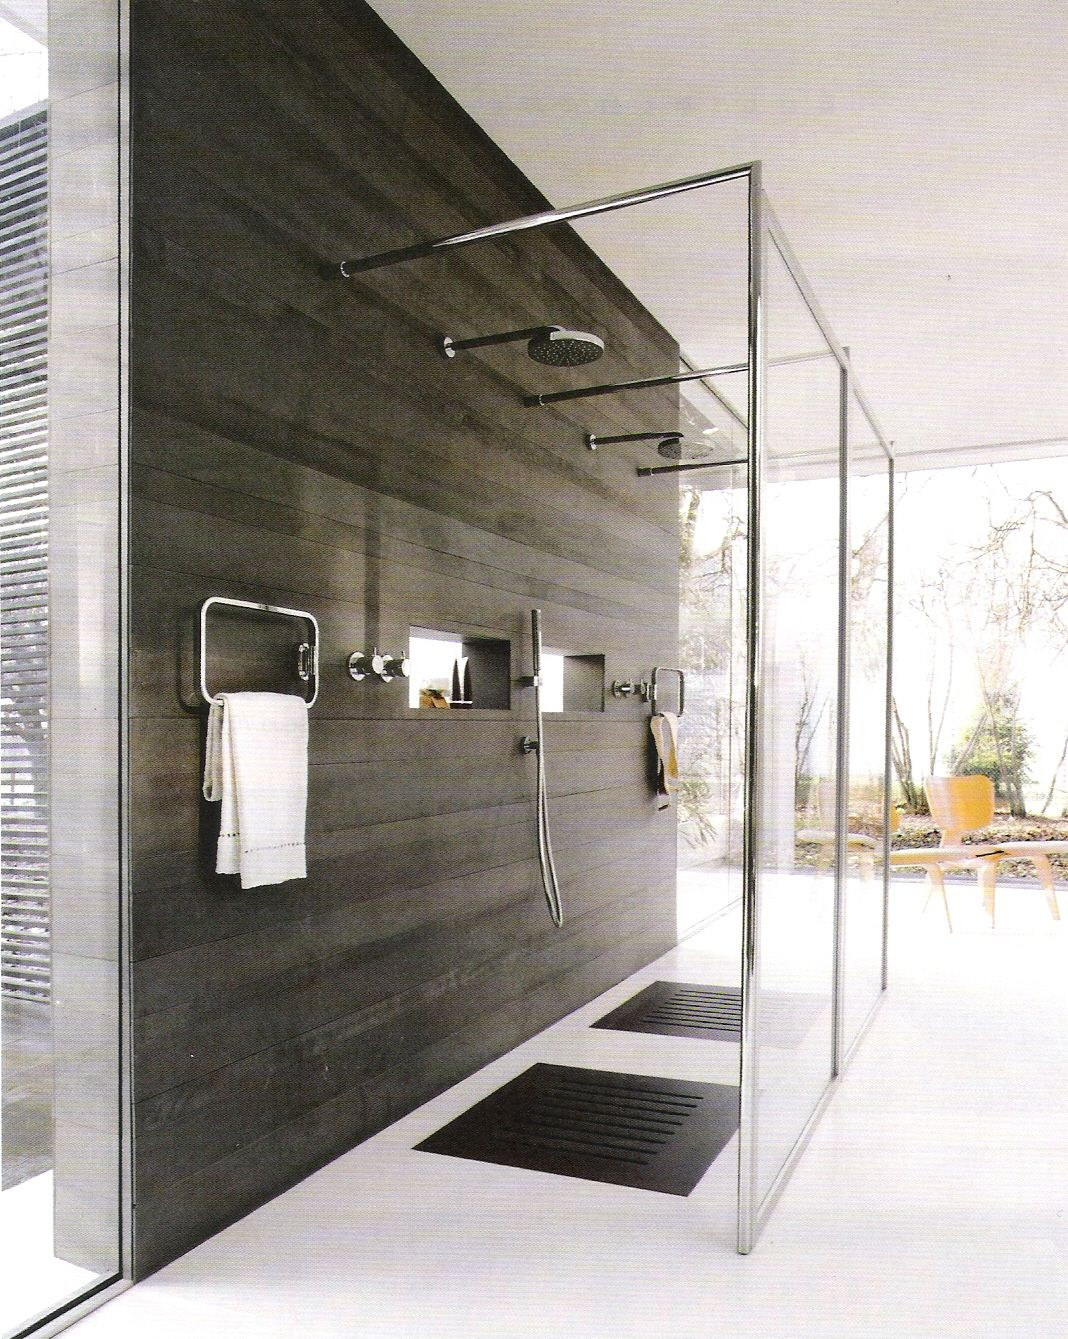 25 incredible open shower ideas open showers showers and bath - Open shower bathroom design ...